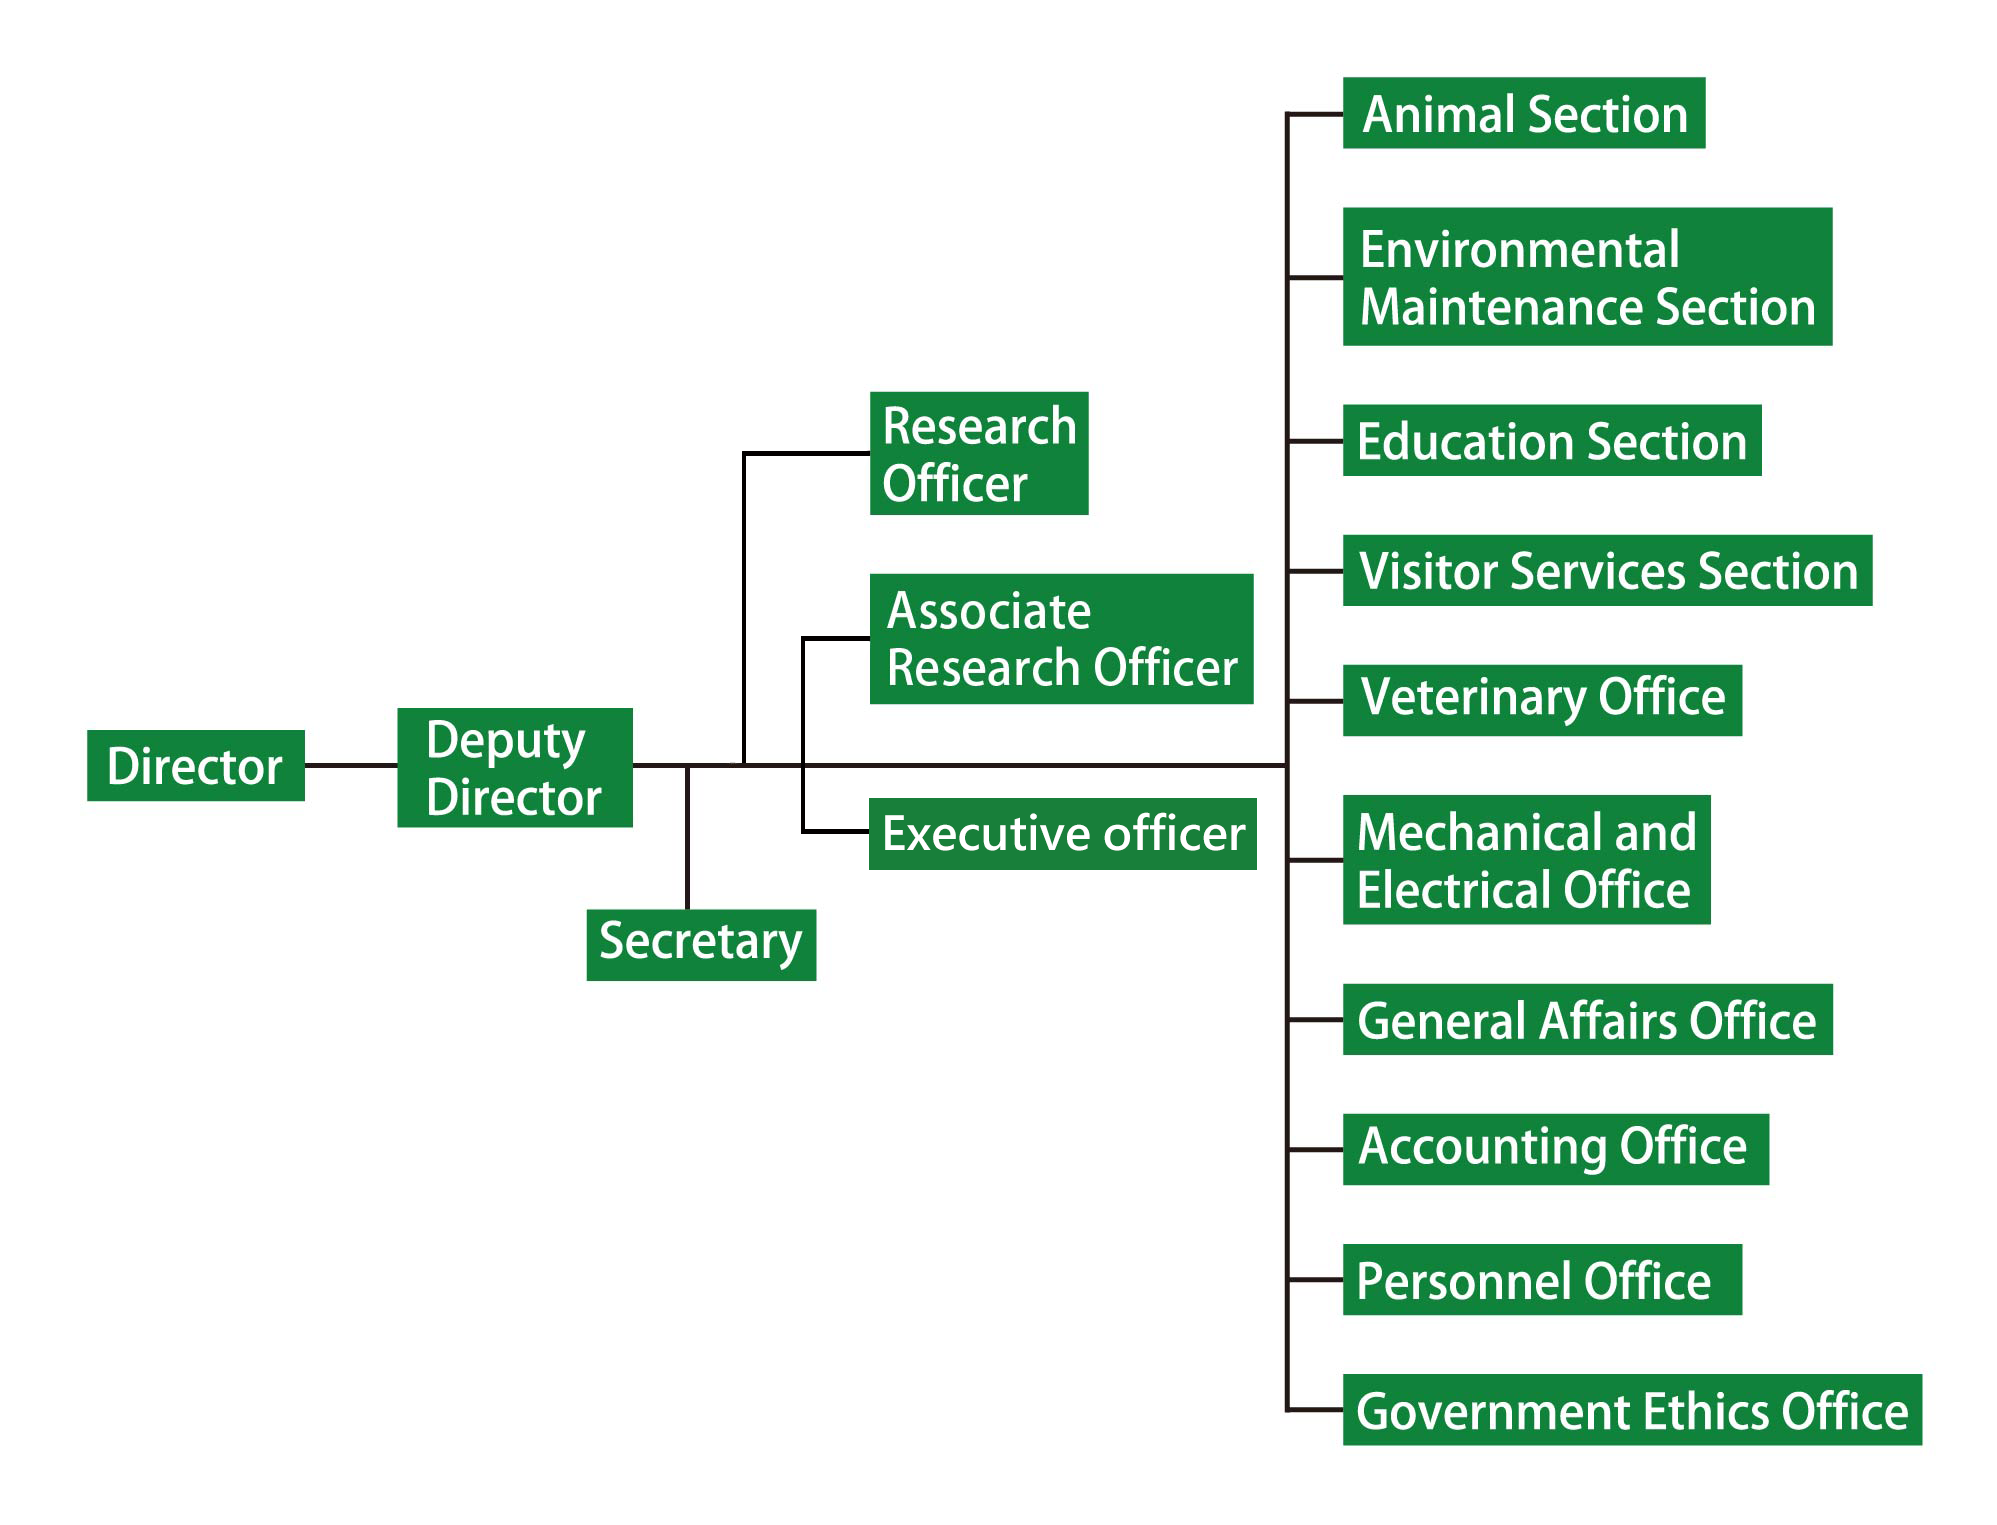 Taipei Zoo Organizational Structure